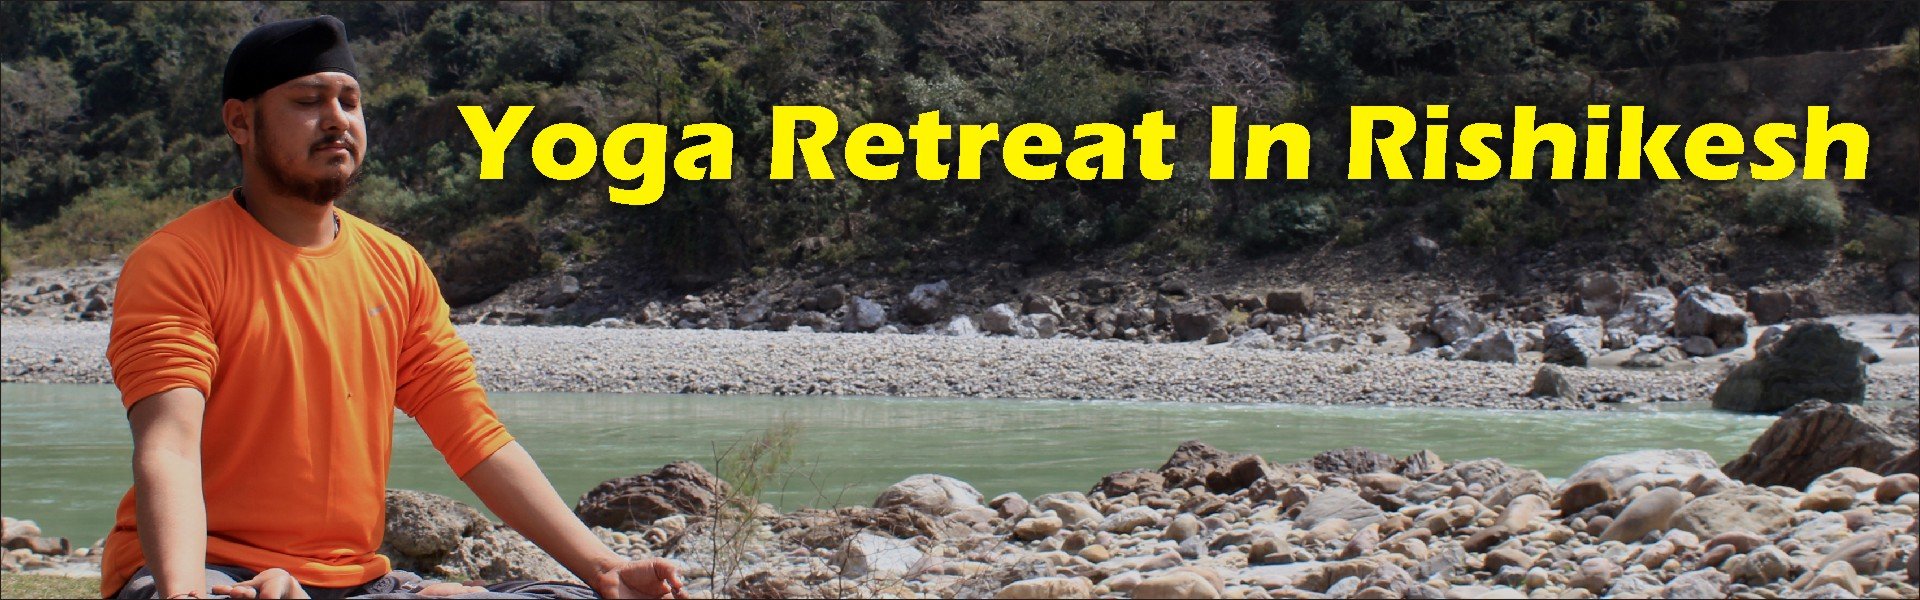 yoga-retreat-rishikesh